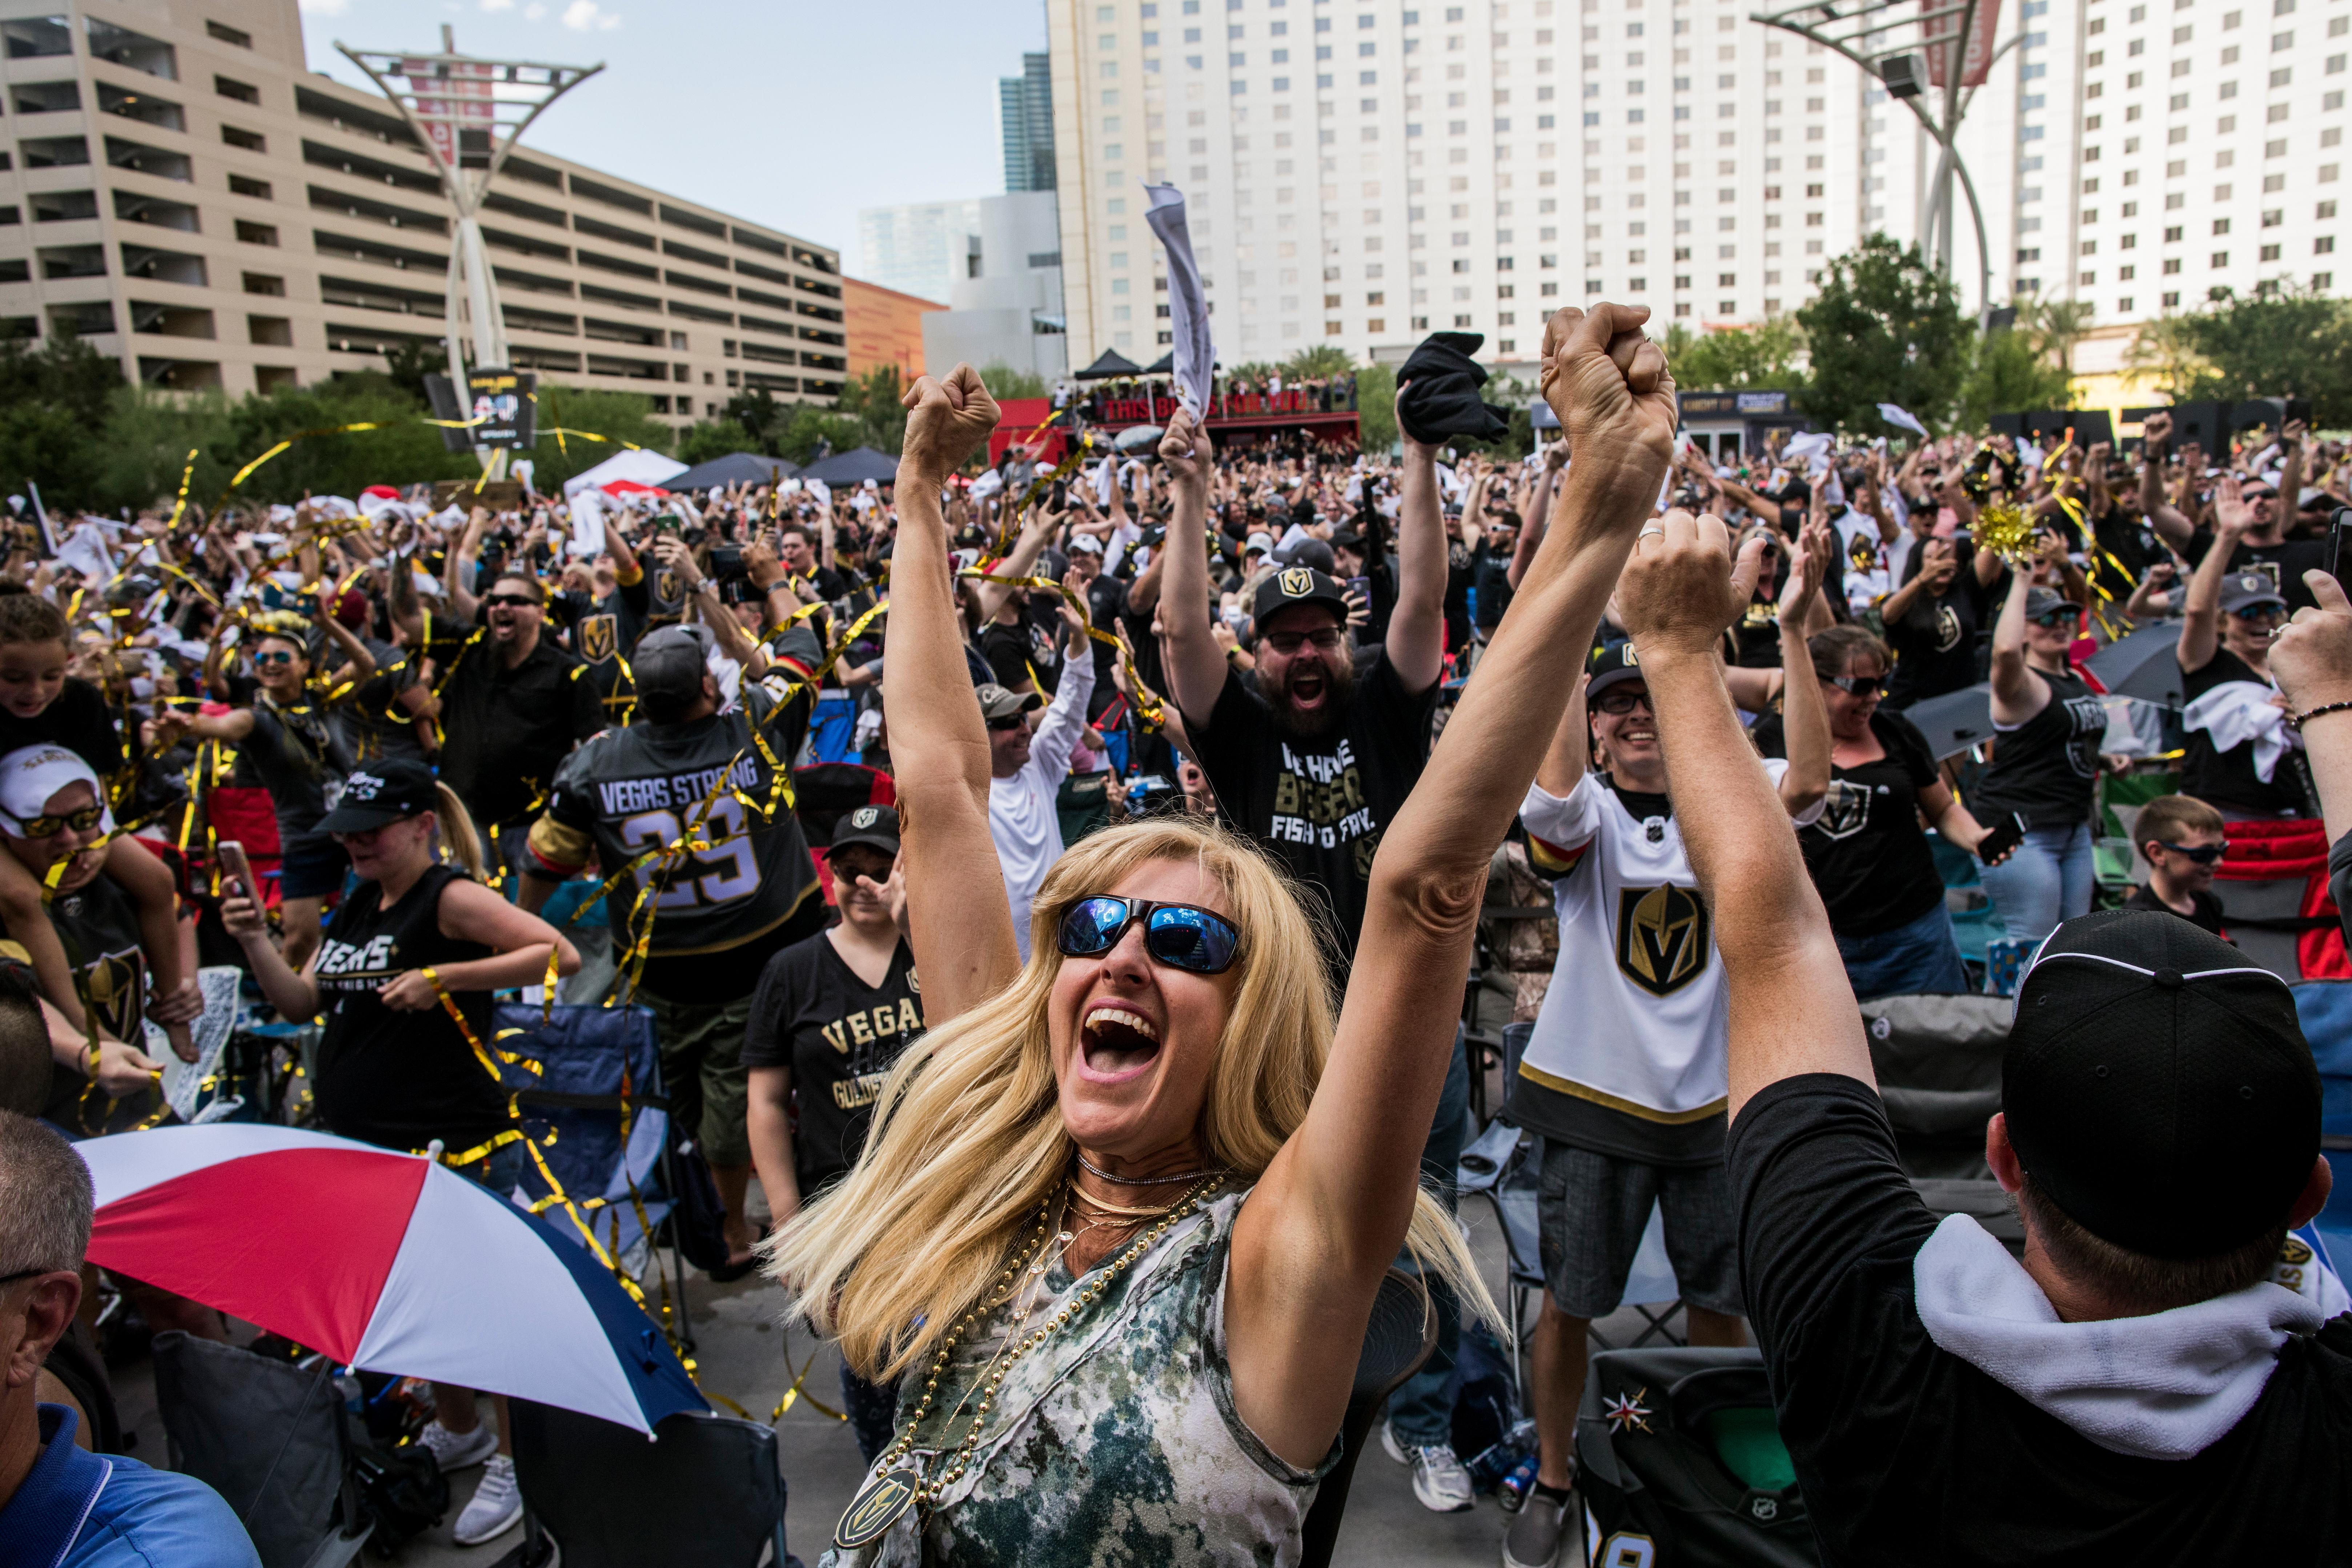 Lauren Olson celebrates after the Vegas Golden Knights defeated the Winnipeg Jets 2-1, winning the Western Conference Championship Sunday May 20, 2018 at Toshiba Plaza outside T-Mobile Arena. The Golden Knights have advanced to the Stanley Cup finals. CREDIT: Joe Buglewicz/Las Vegas News Bureau